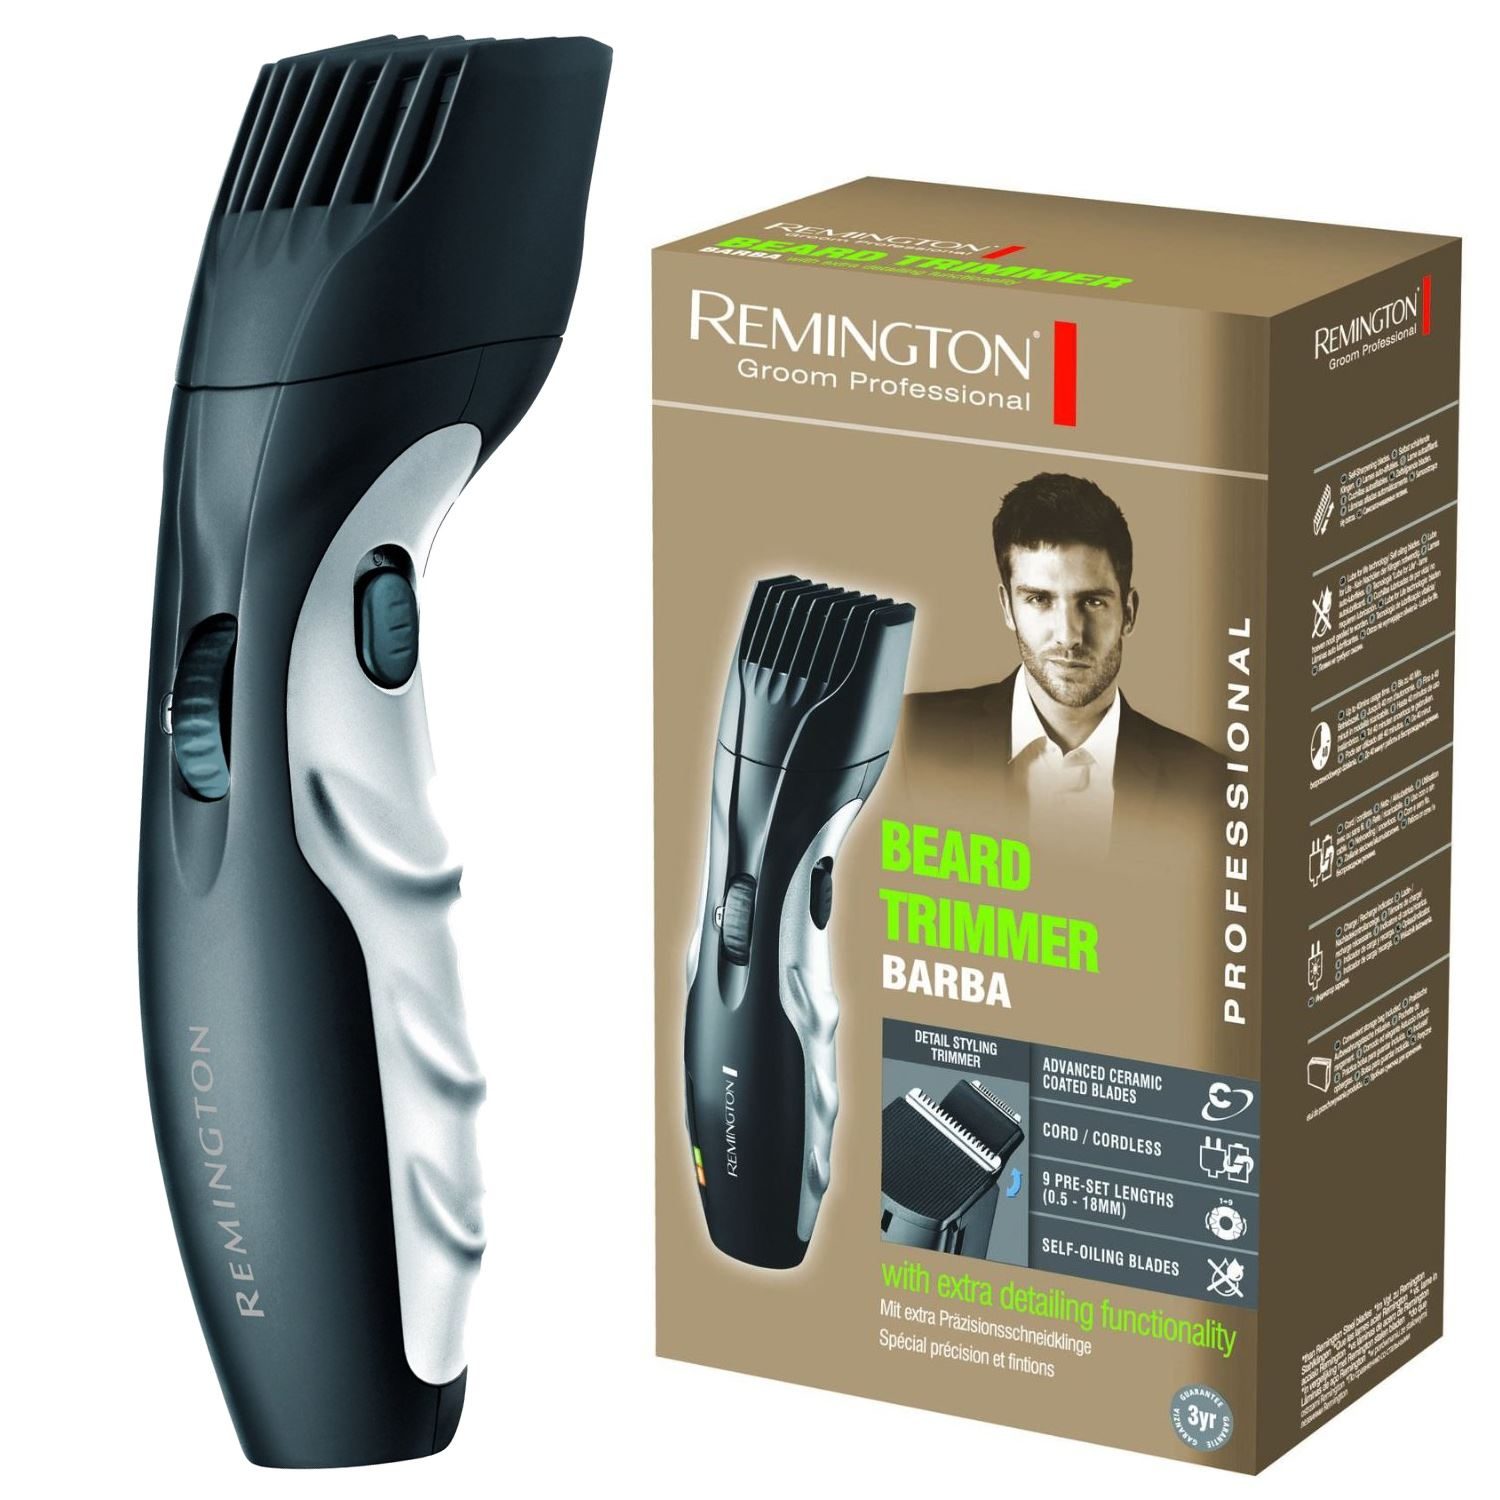 beard trimmer zoom wheel new remington mb320c barba beard trimmer rechargeable pinterest the. Black Bedroom Furniture Sets. Home Design Ideas